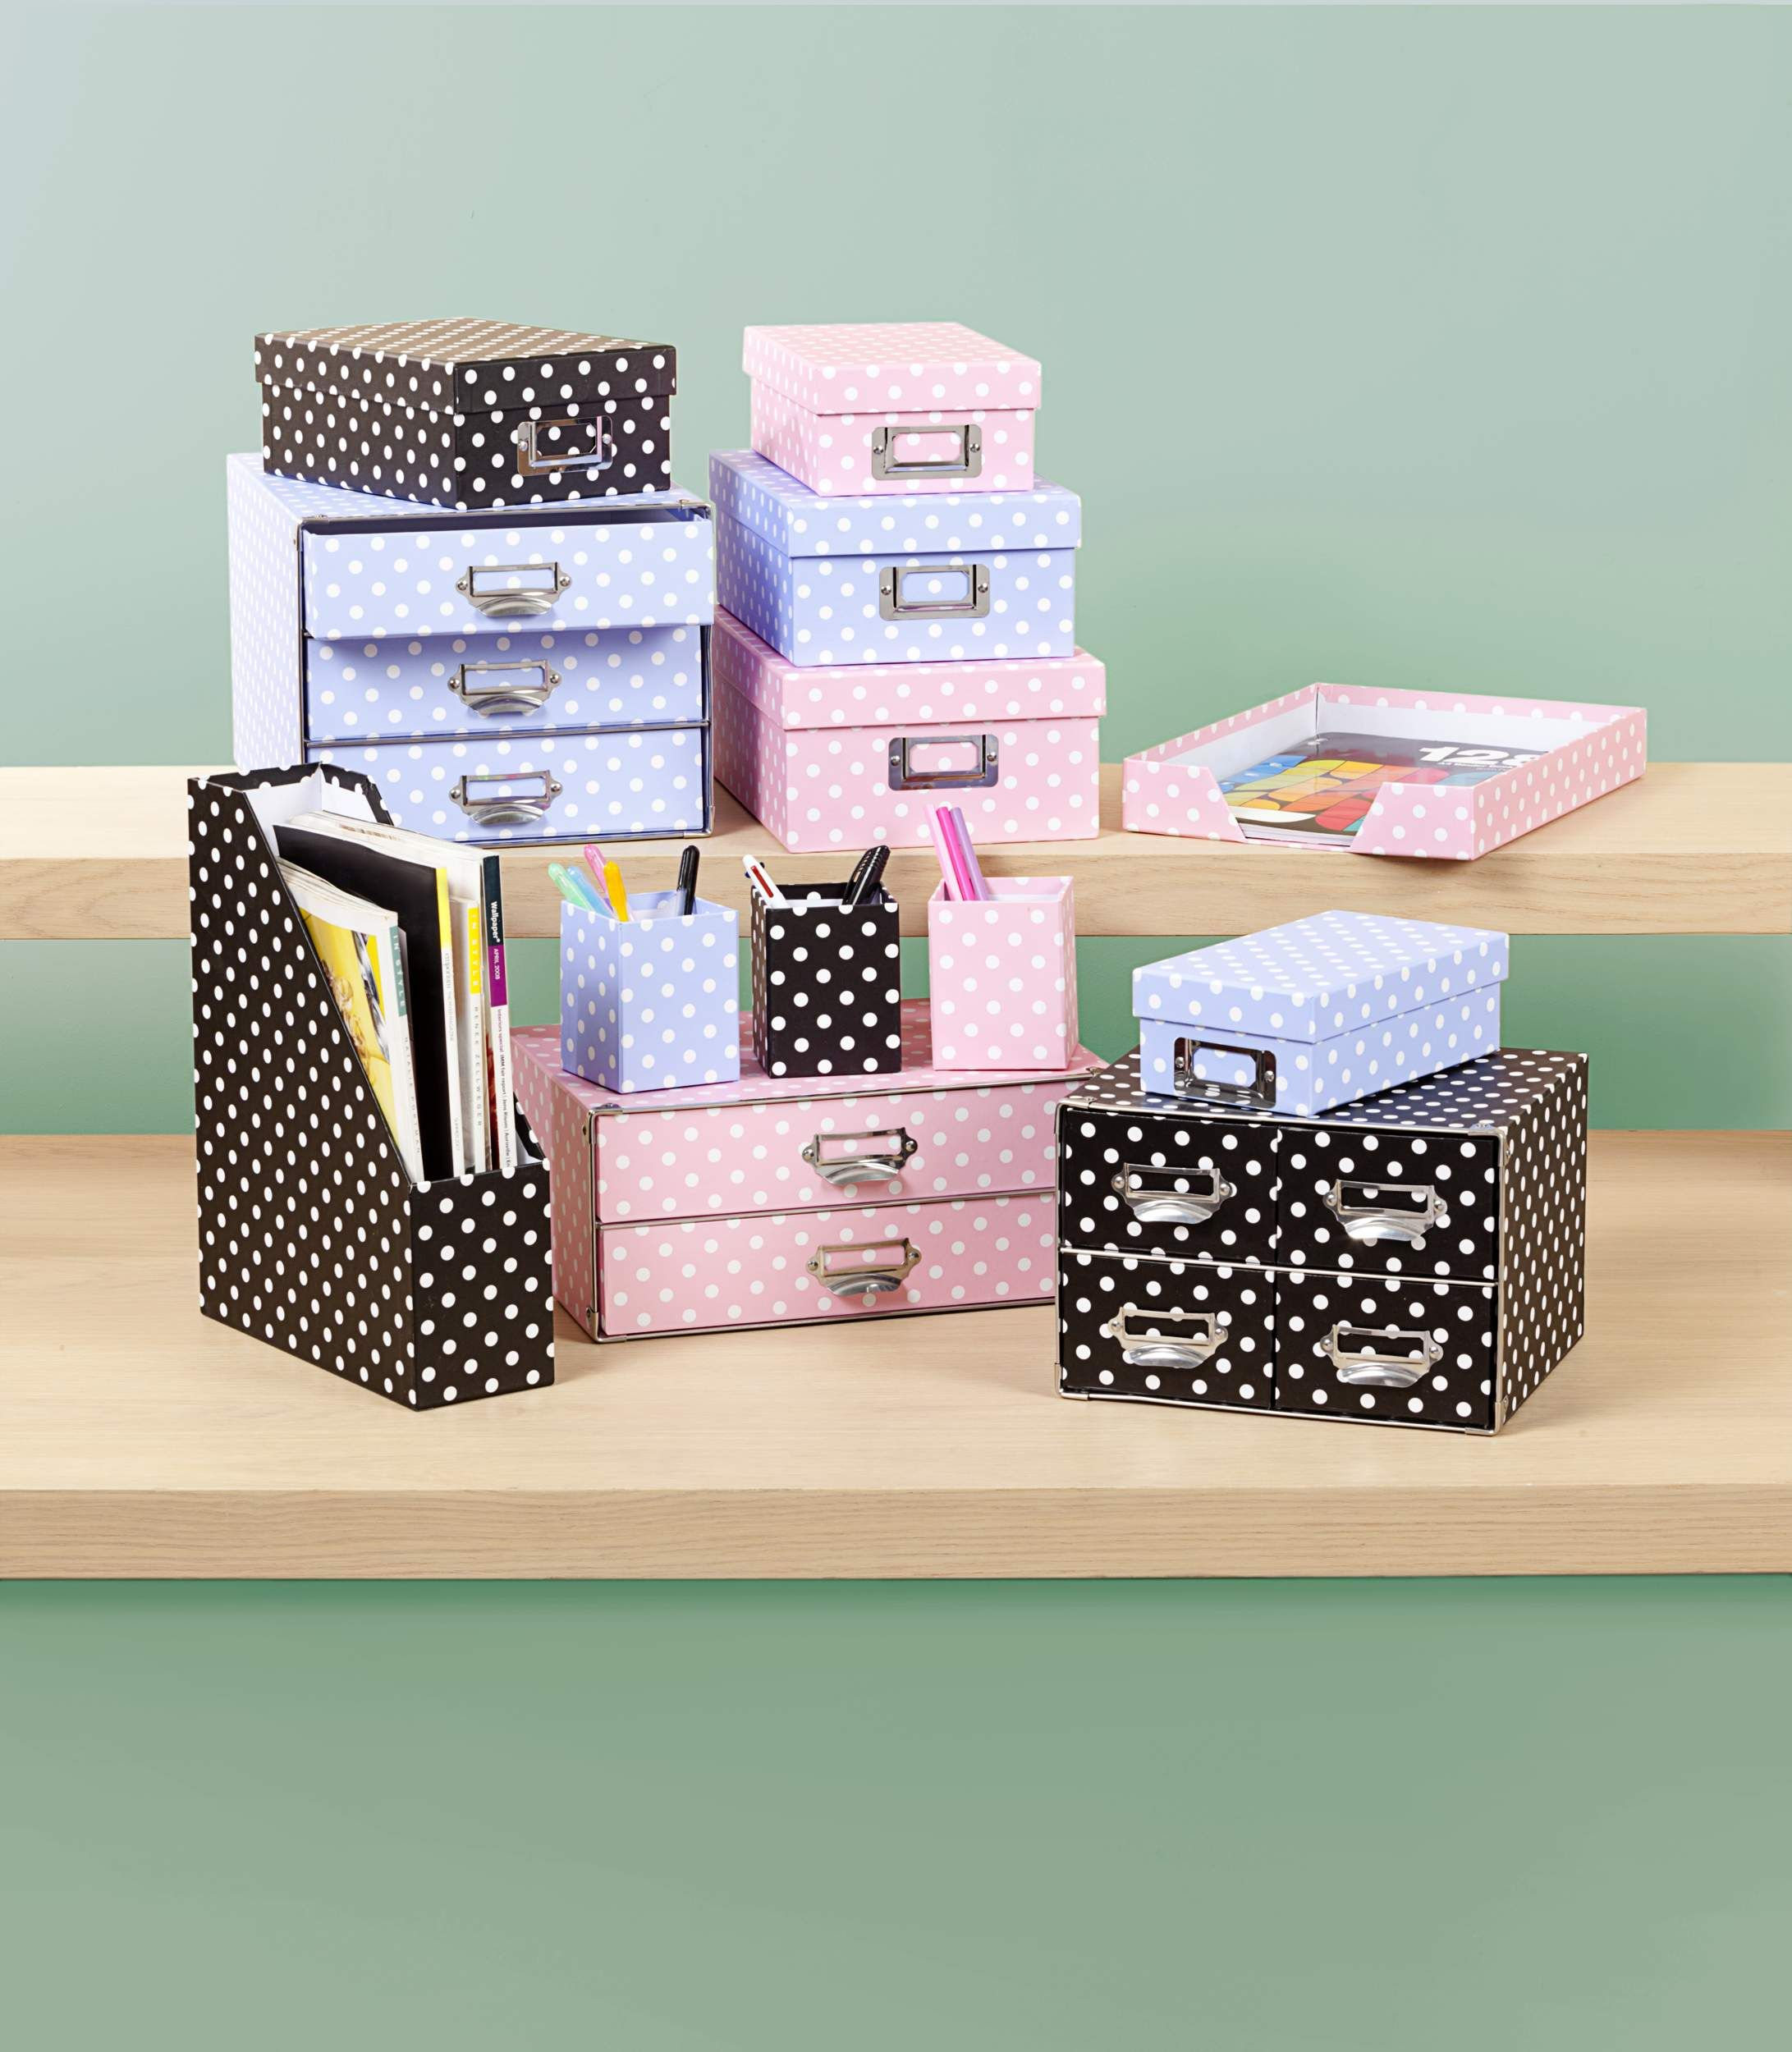 Polka Dot Desk Accessories From The Reject Prices 2 12 Pink